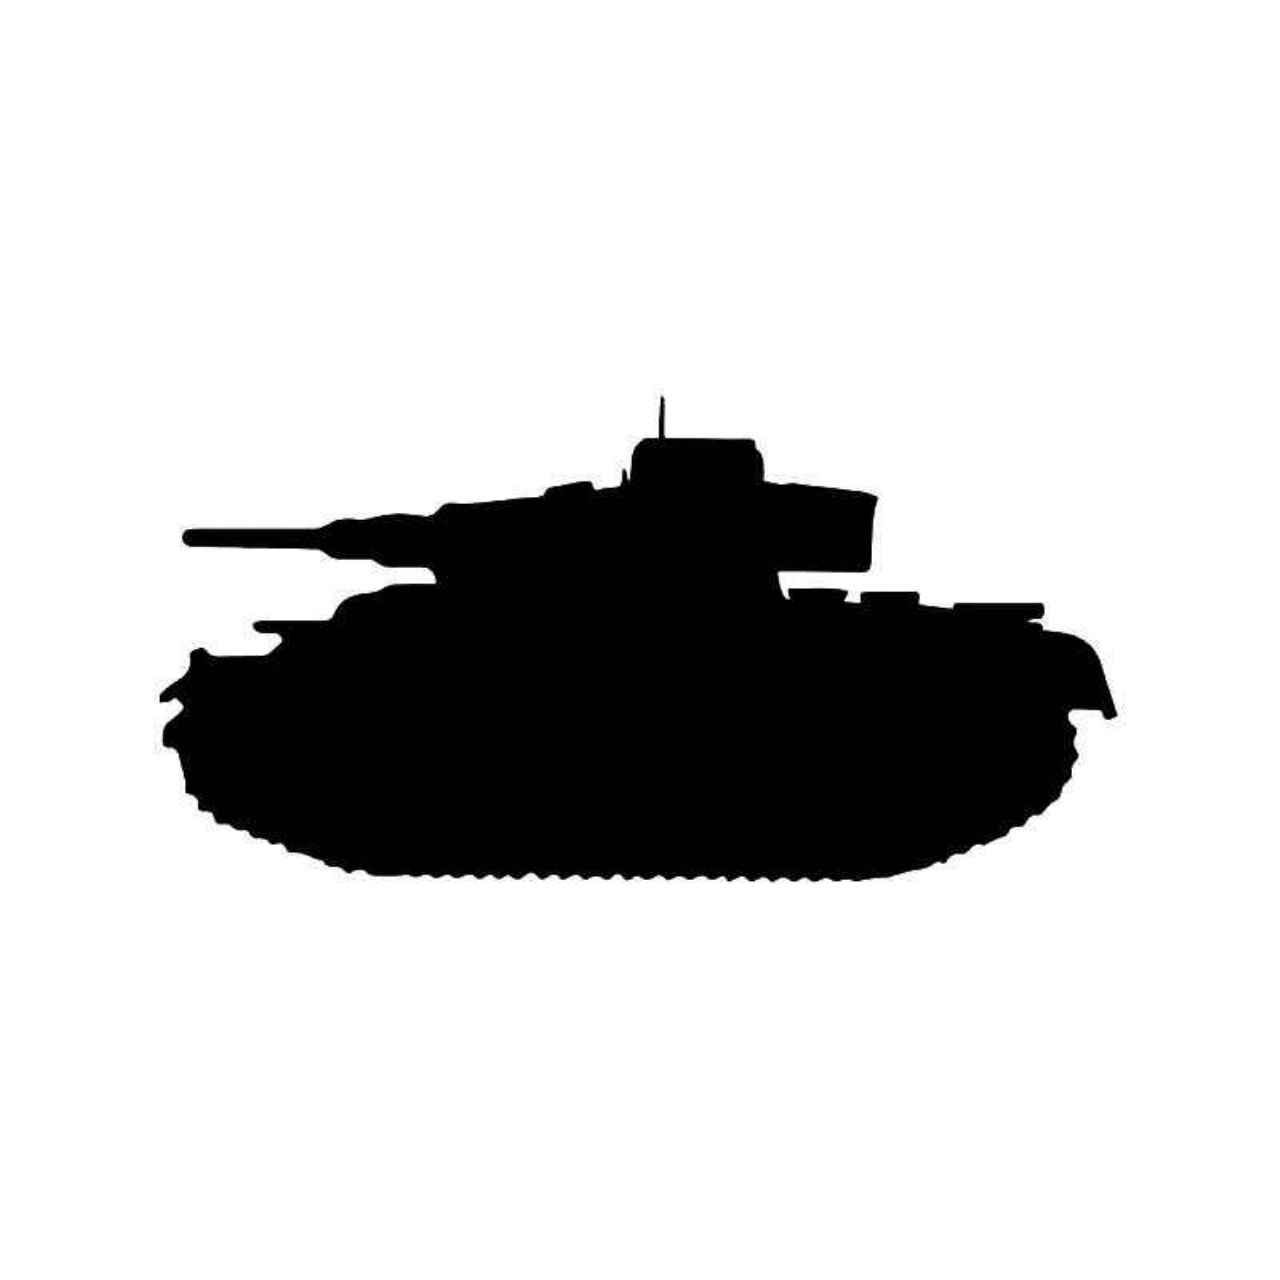 1280x1280 Ww2 Panzer Tank Military Vinyl Decal Sticker Military, Military